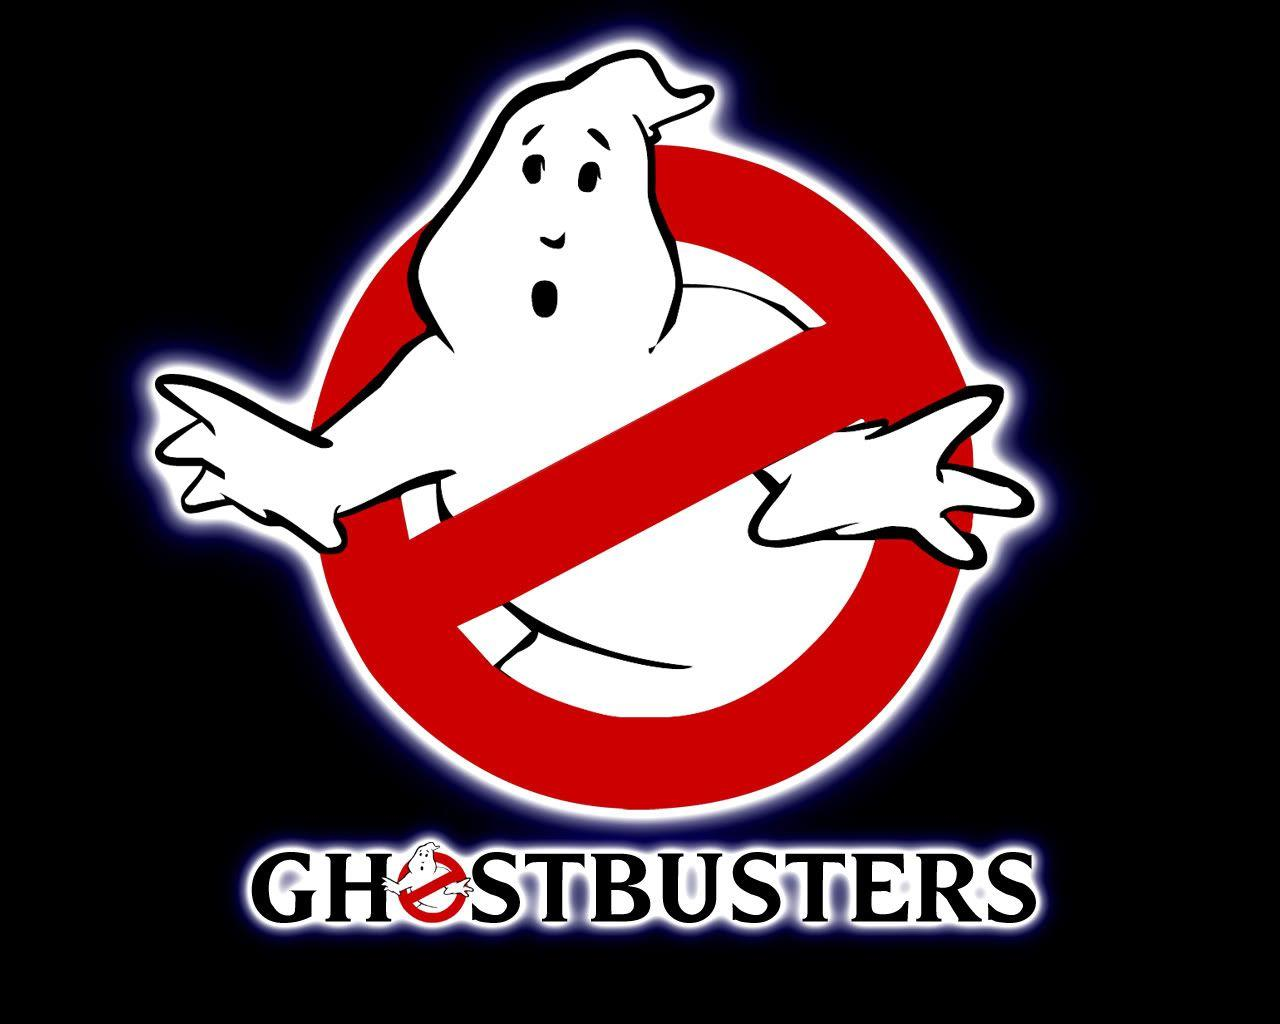 Ghostbuster Wallpapers - Wallpaper Cave